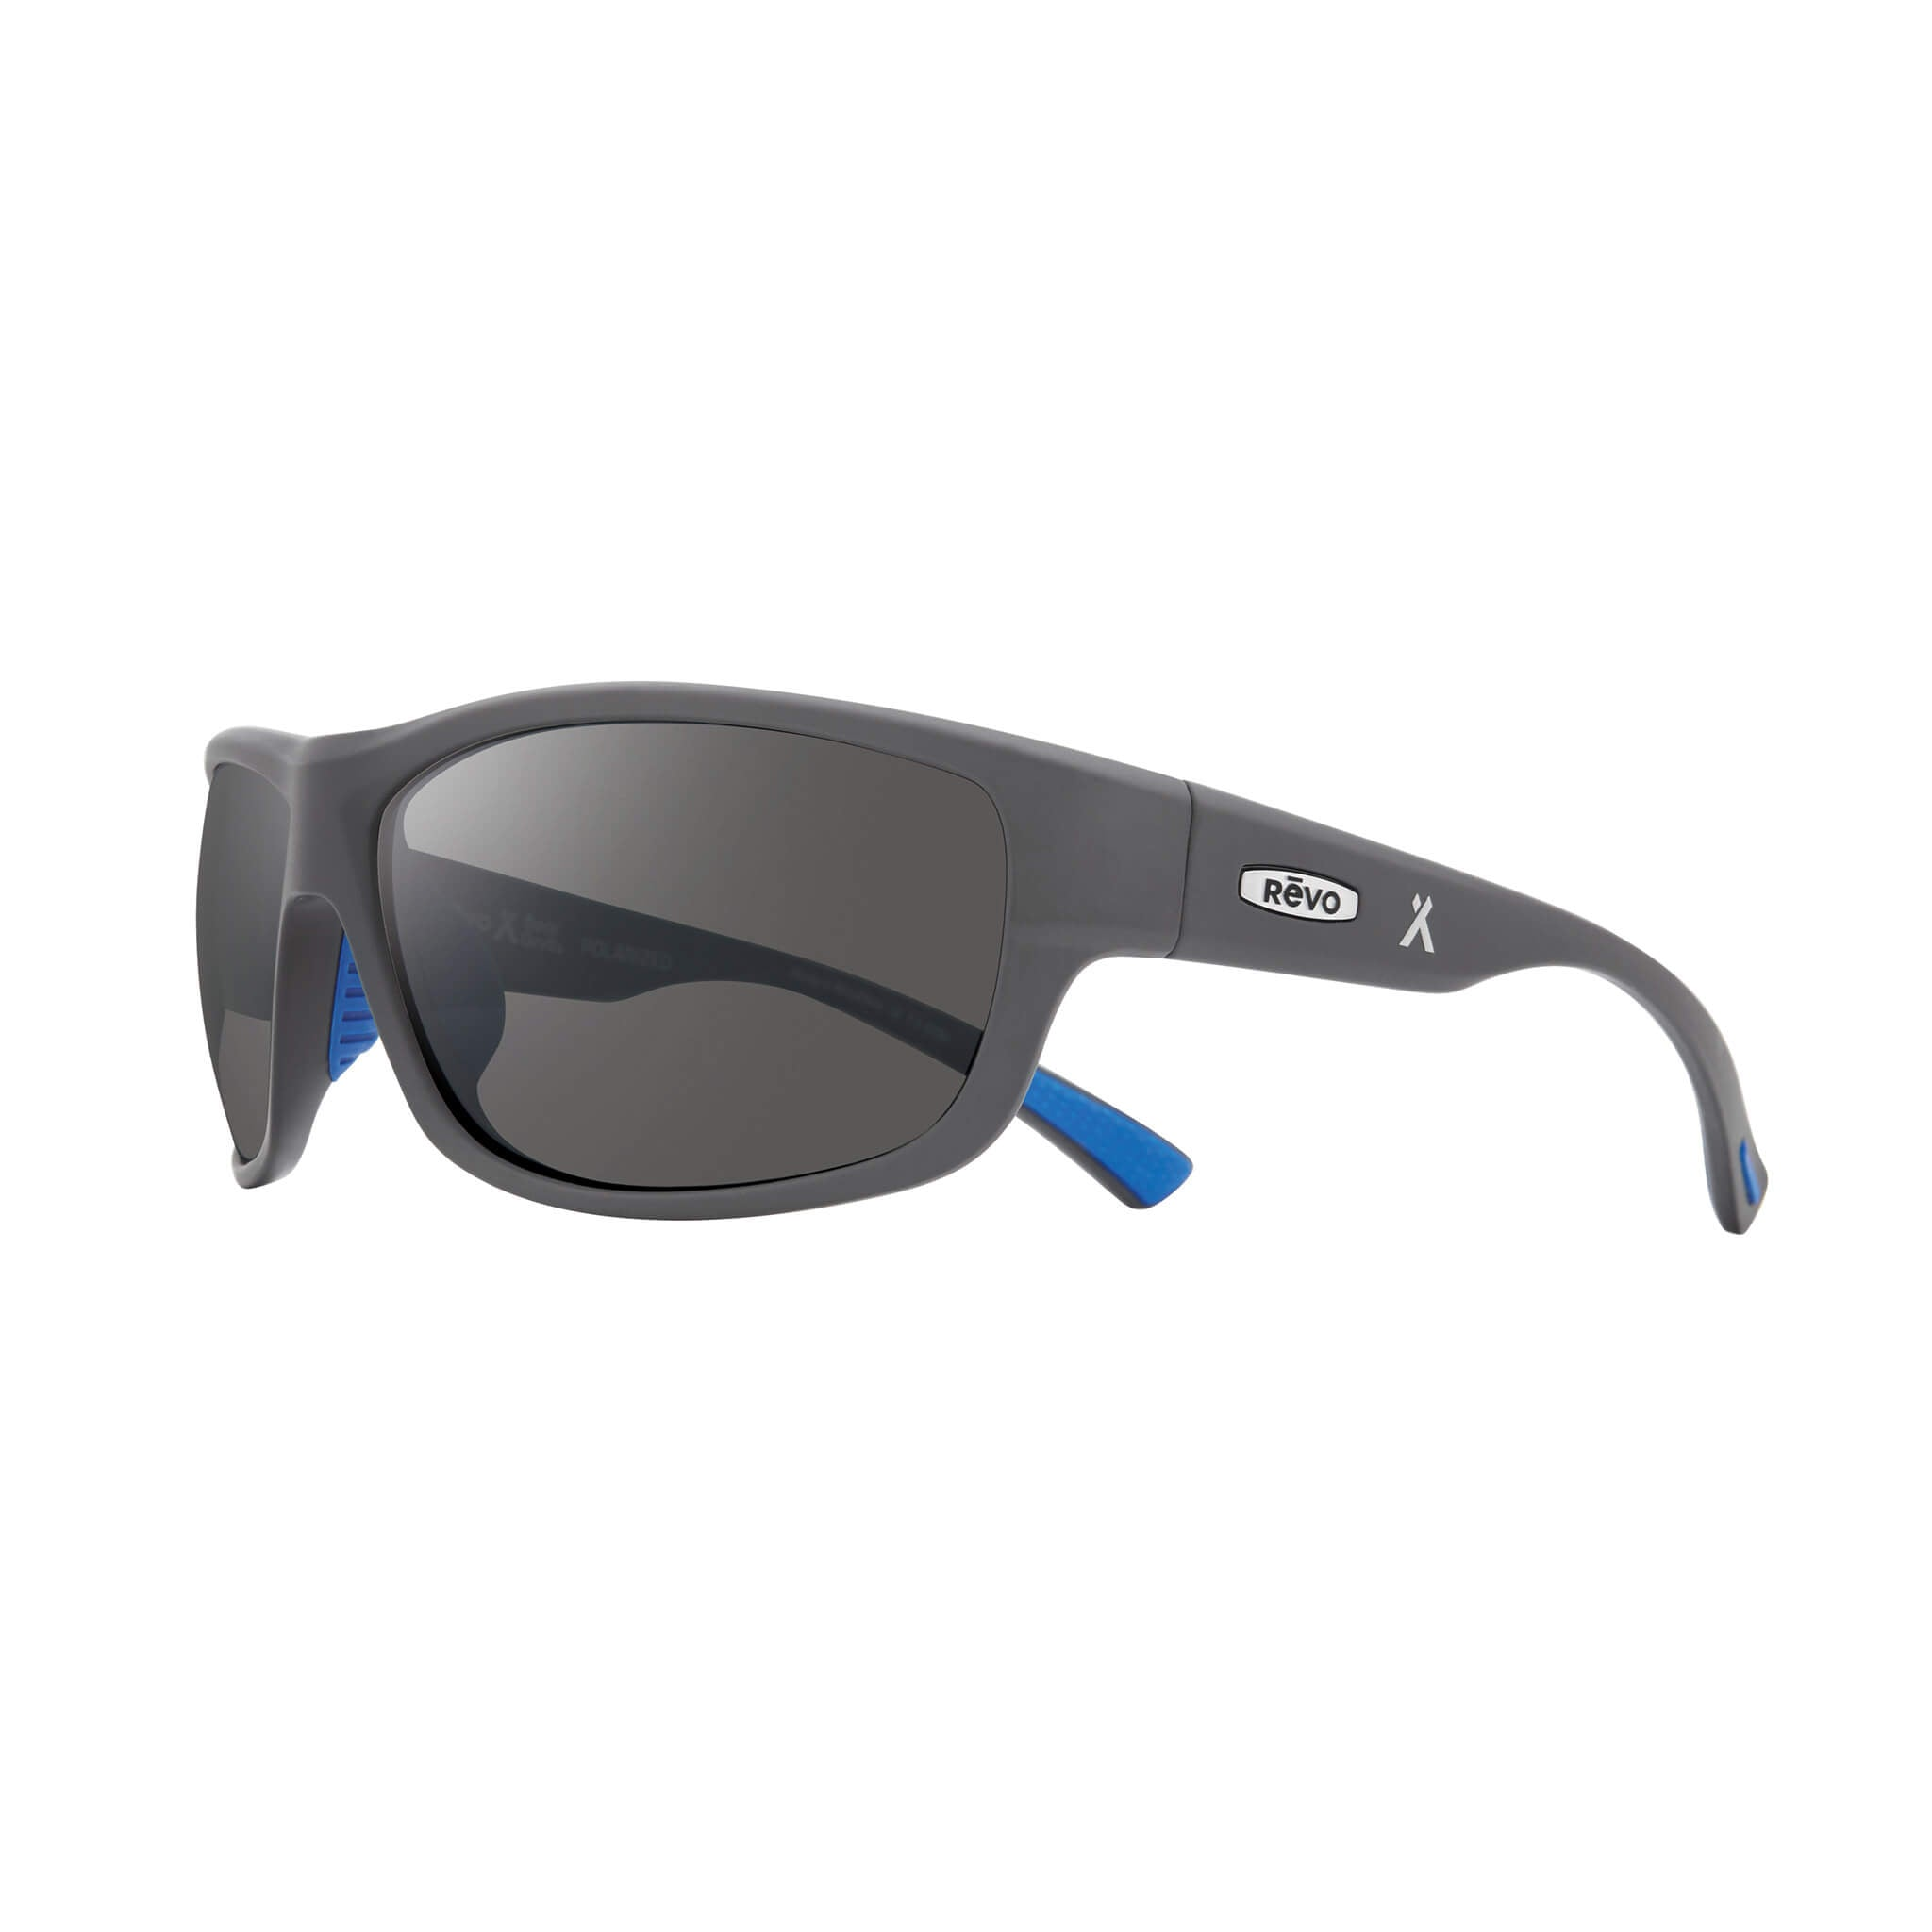 Matte light grey + graphite lens:Side view of Bear Grylls Revo Caper Sunglasses